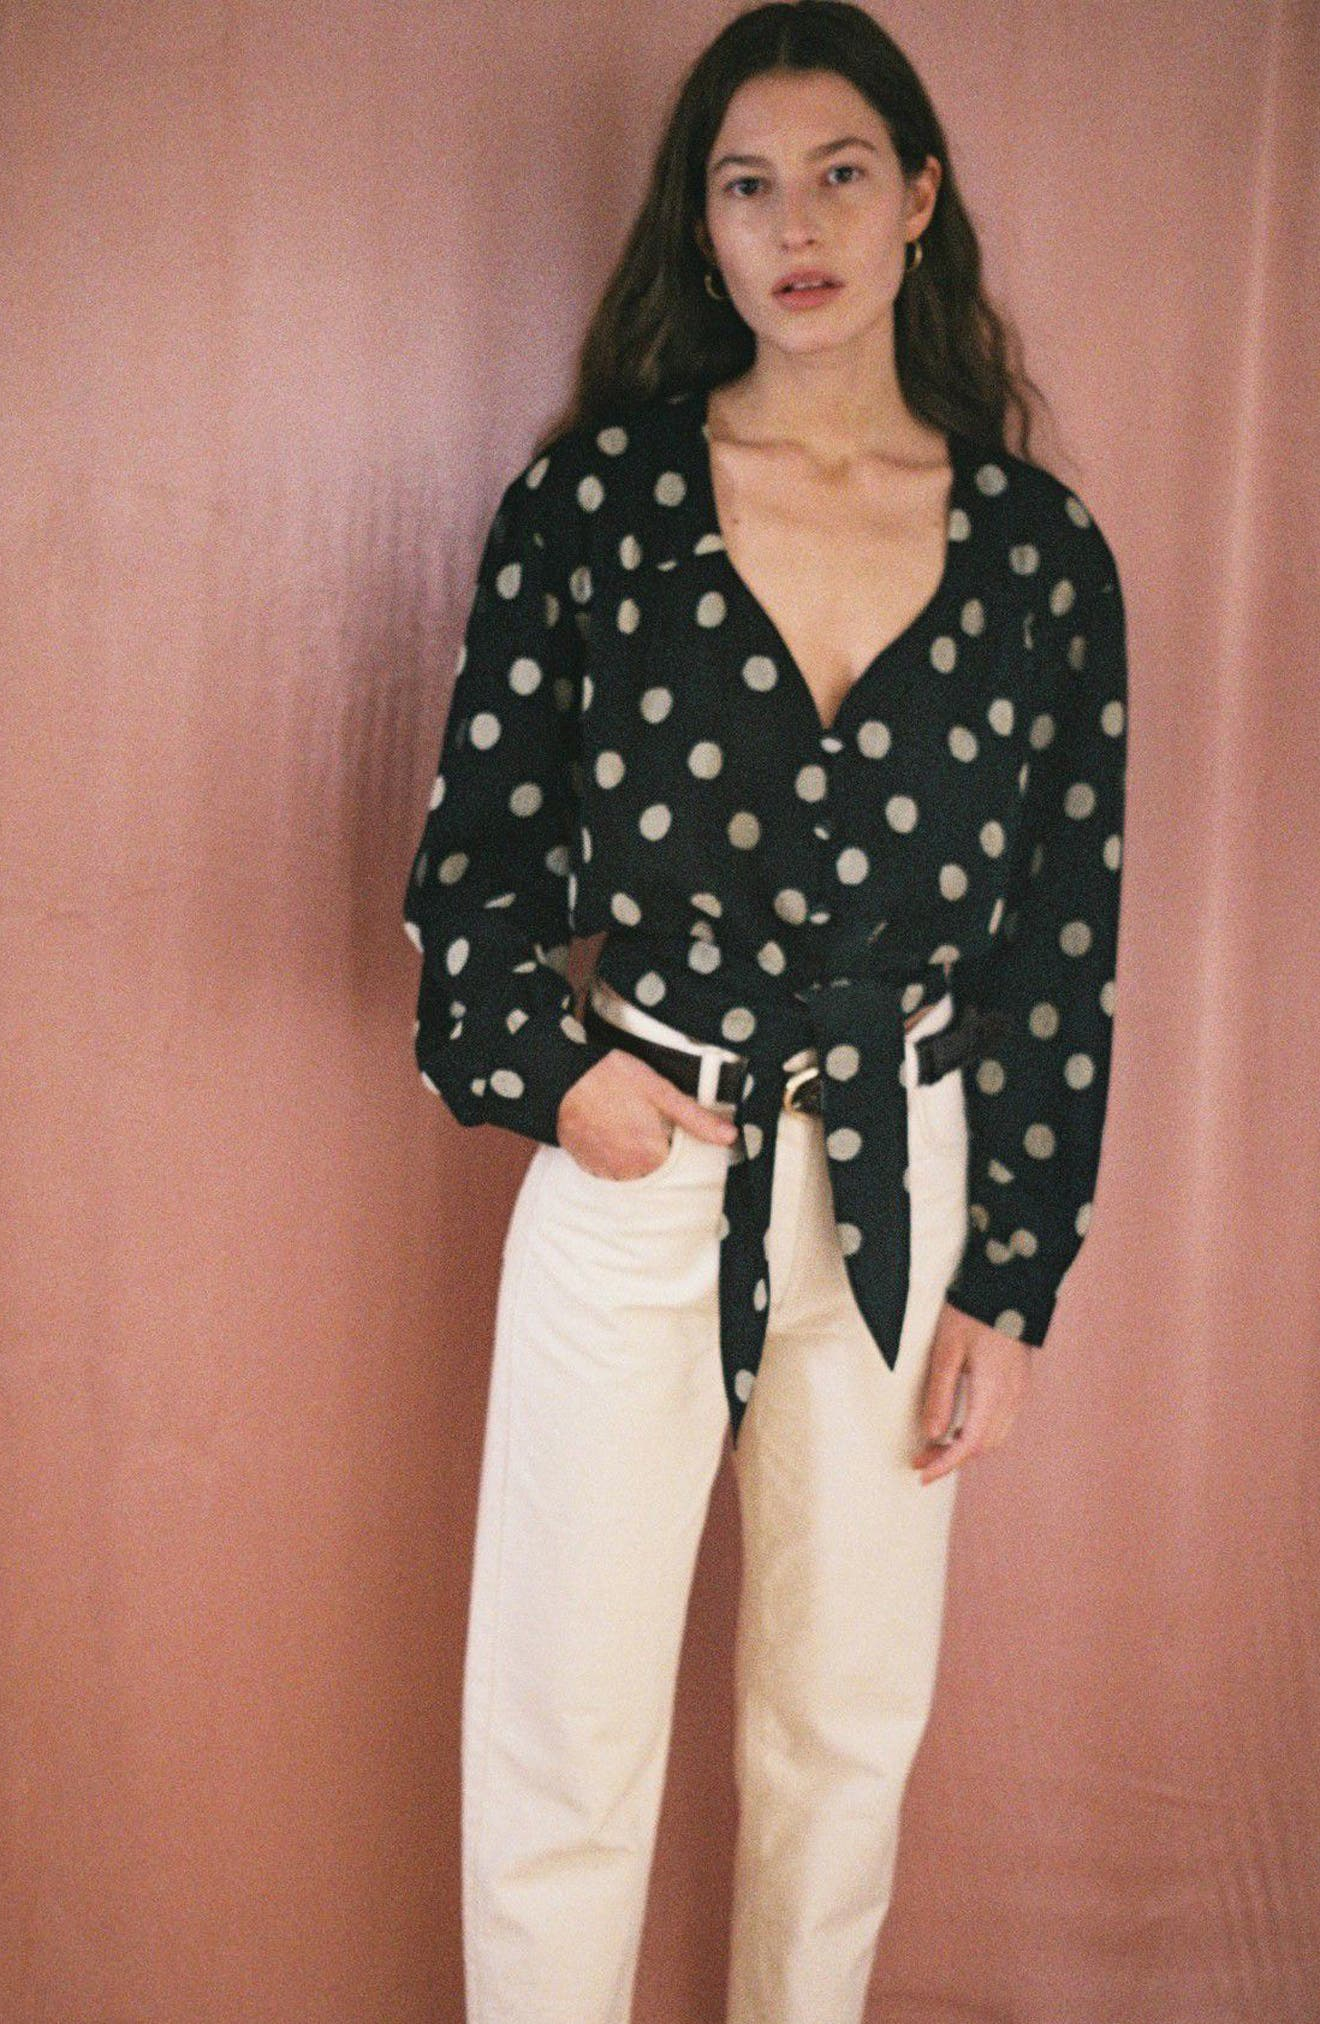 Amulet Polka Dot Tech Chiffon Blouse,                             Alternate thumbnail 9, color,                             Polka Dot